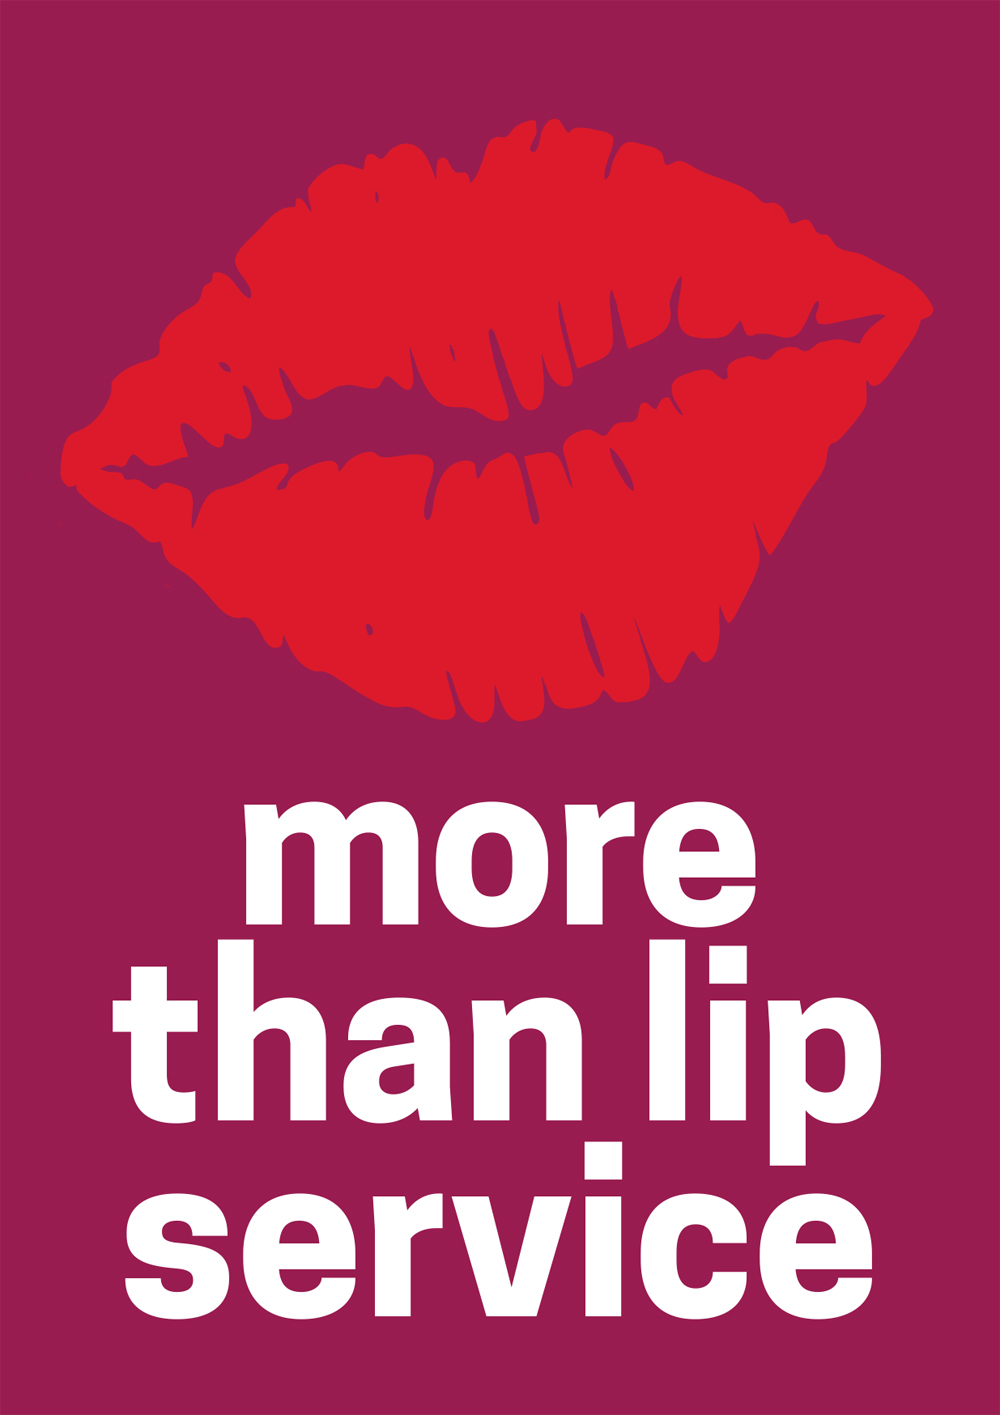 Prevention needs more than lip service